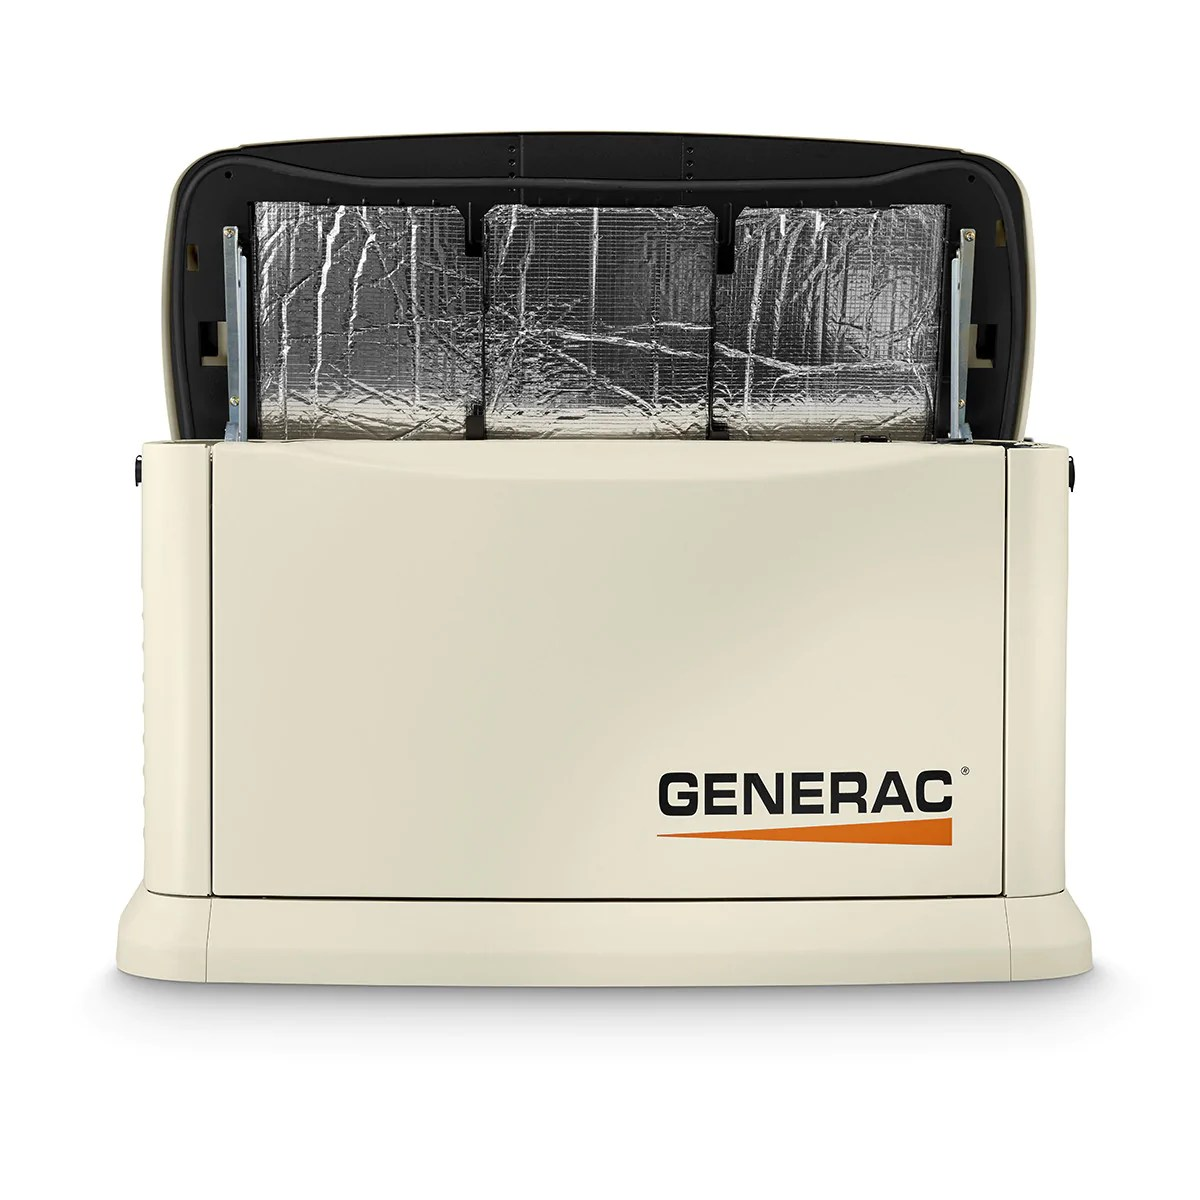 generac guardian 7043 22kw aluminum automatic standby generator with 200a se rated transfer switch [ 1200 x 1200 Pixel ]